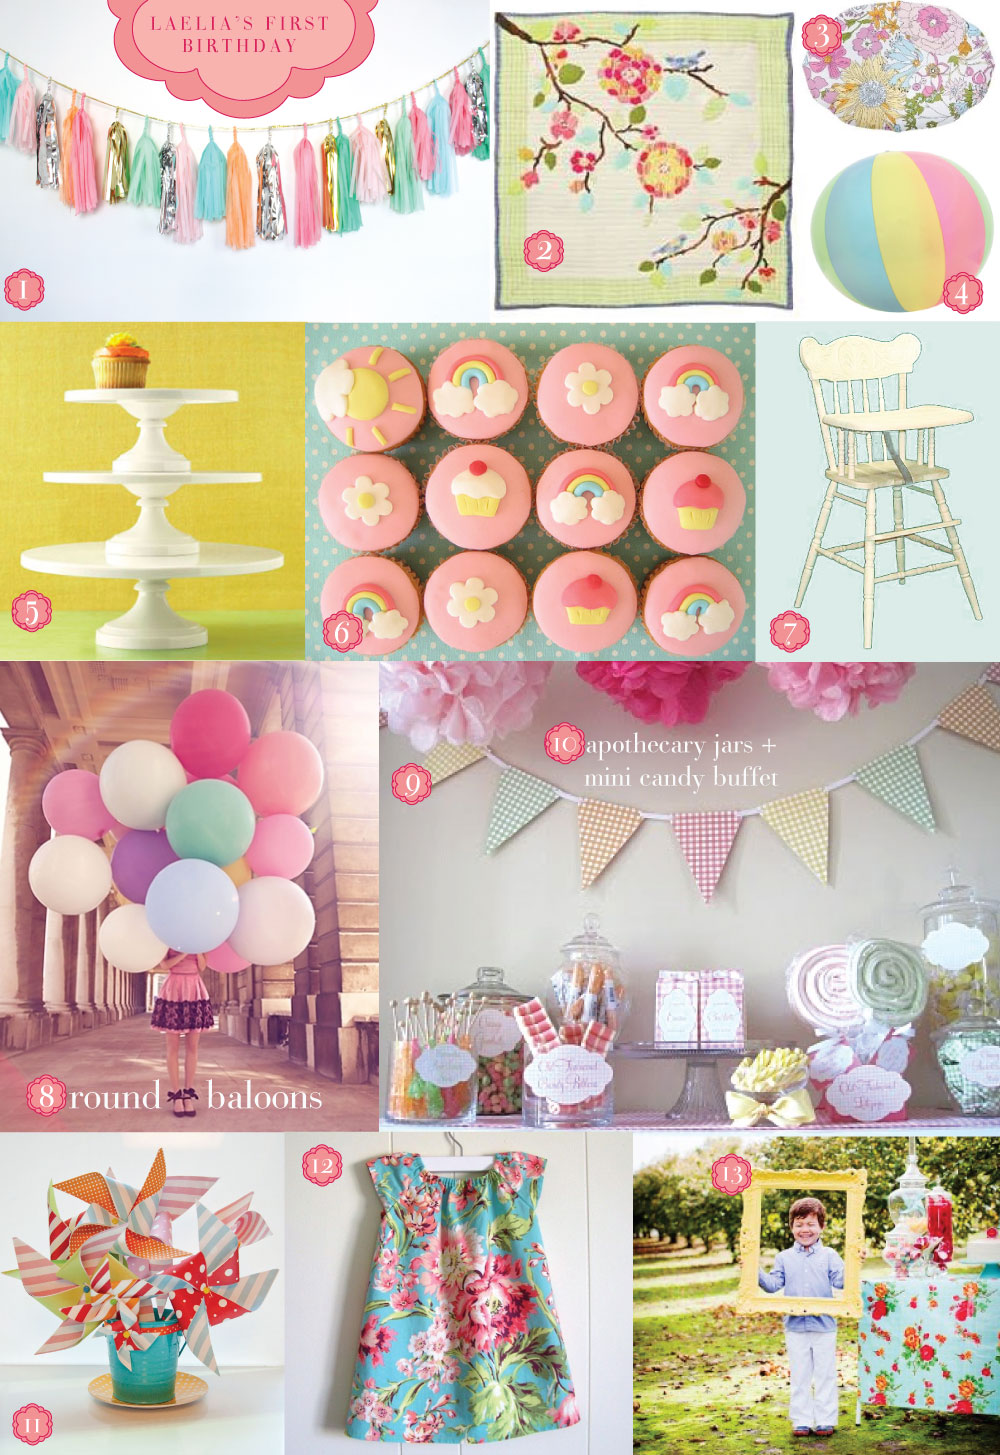 lots of pretty pastel colors, would go good for a vintage tea party baby shower